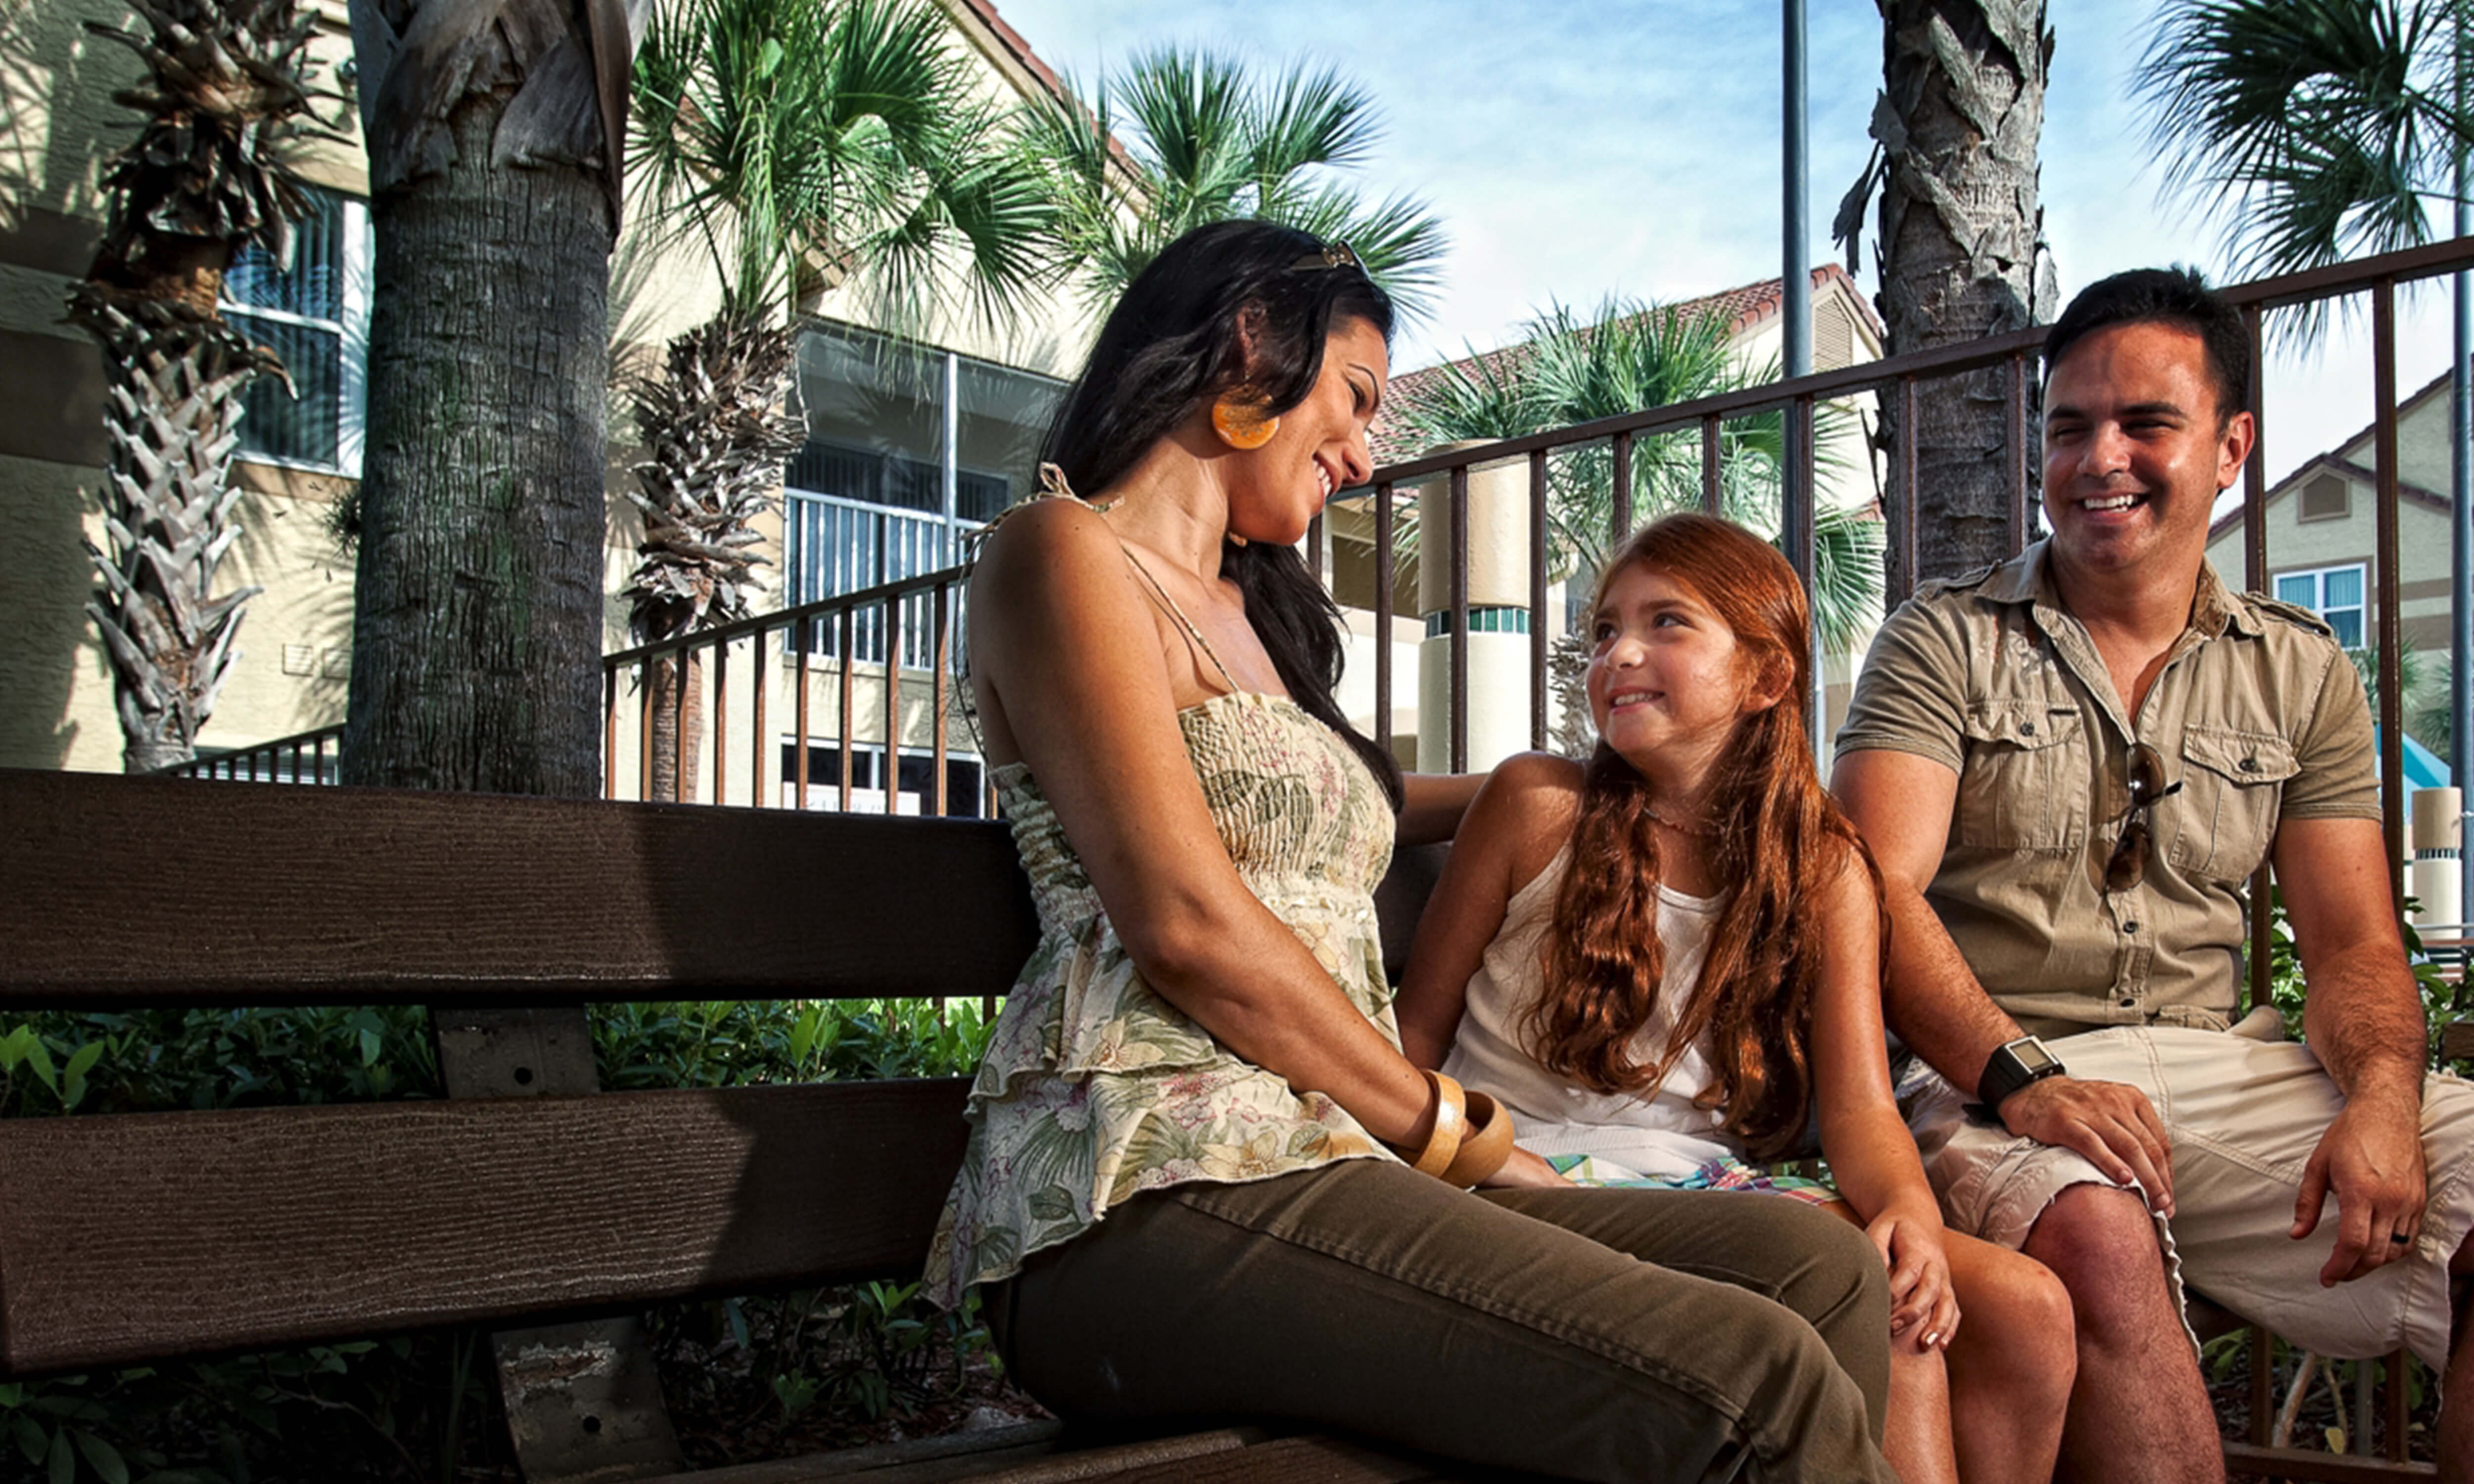 Family relaxing during their Orlando vacation | Westgate Blue Tree Resort